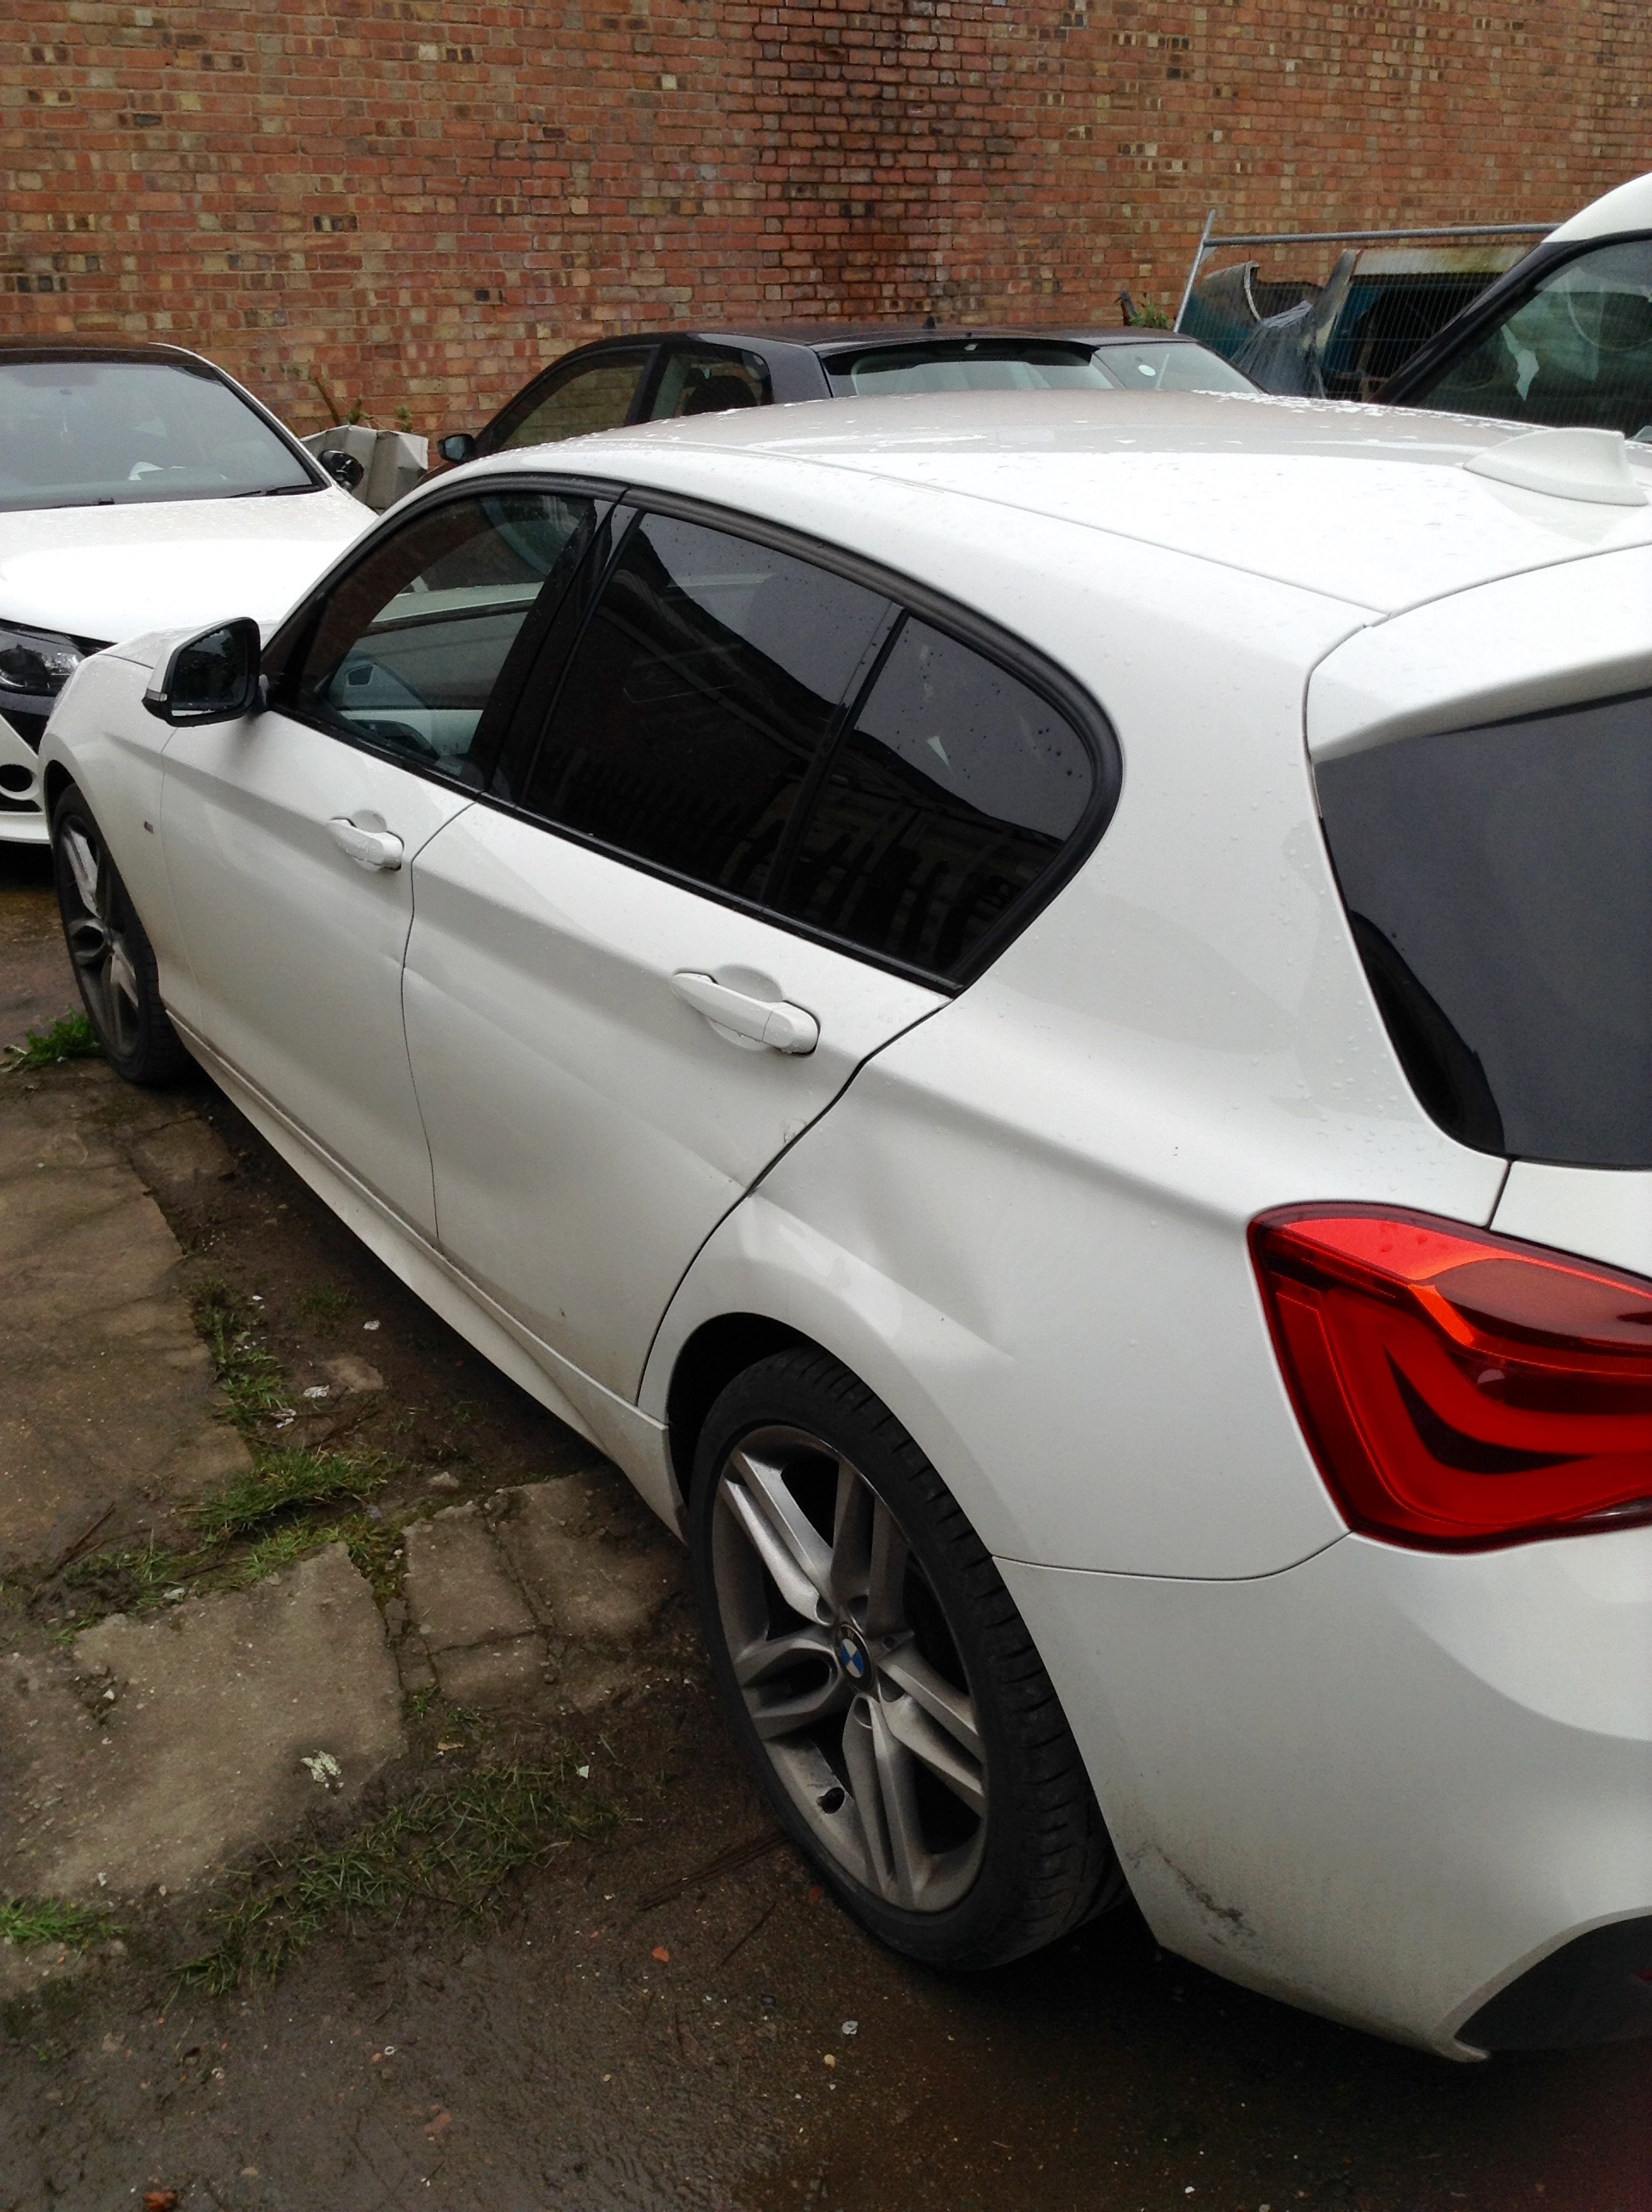 Bmw 1 Series Damage To N S Front Rear Doors 1 4 Panel Coventry Accident Body Paintless Dent Removal Repairs Ams